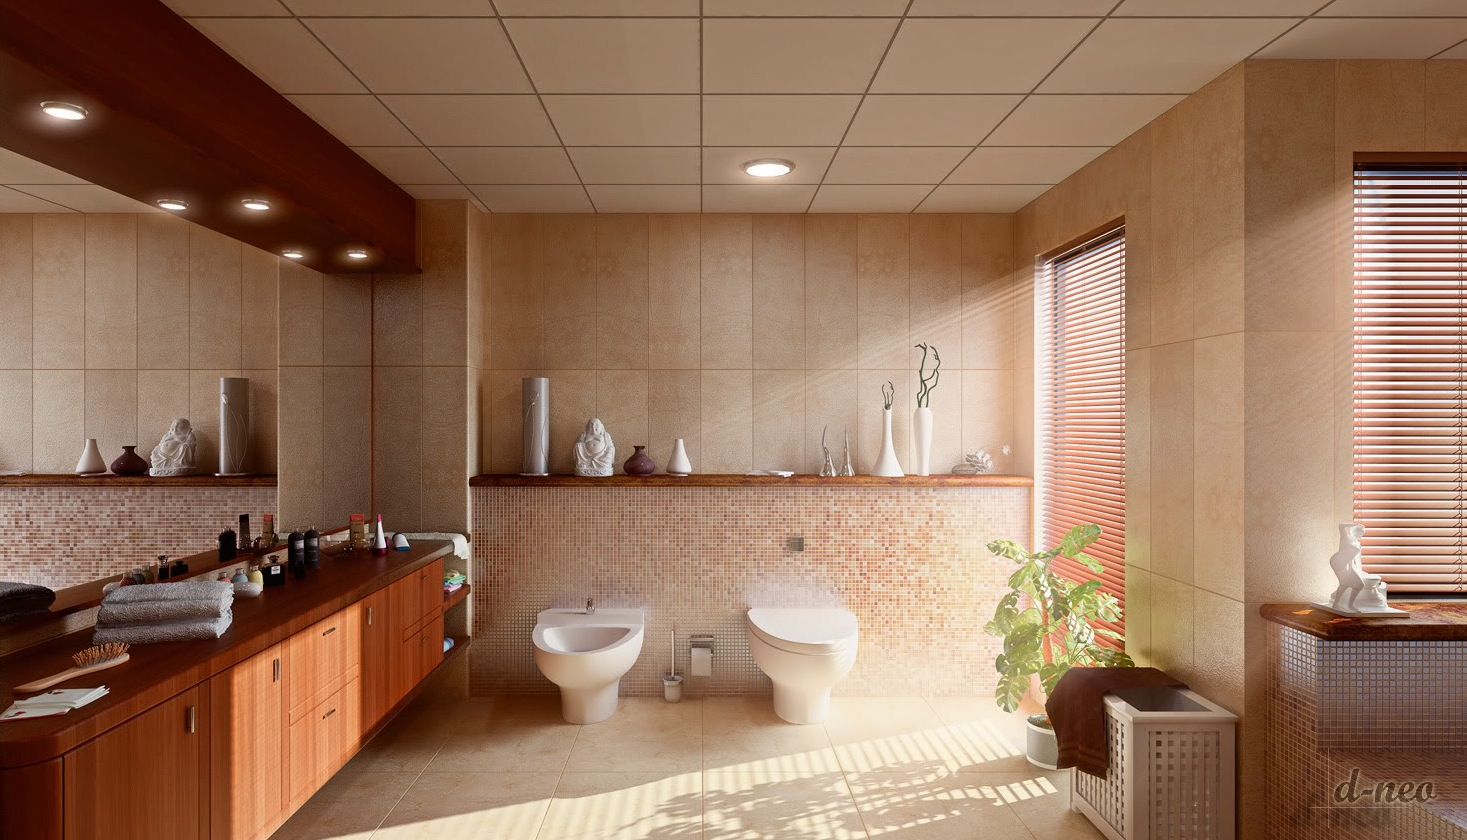 Large Bathroom Design Ideas Amazing Mosaic Tiled Bathroom Large Vanity Unit  Interior Design Ideas Decorating Design